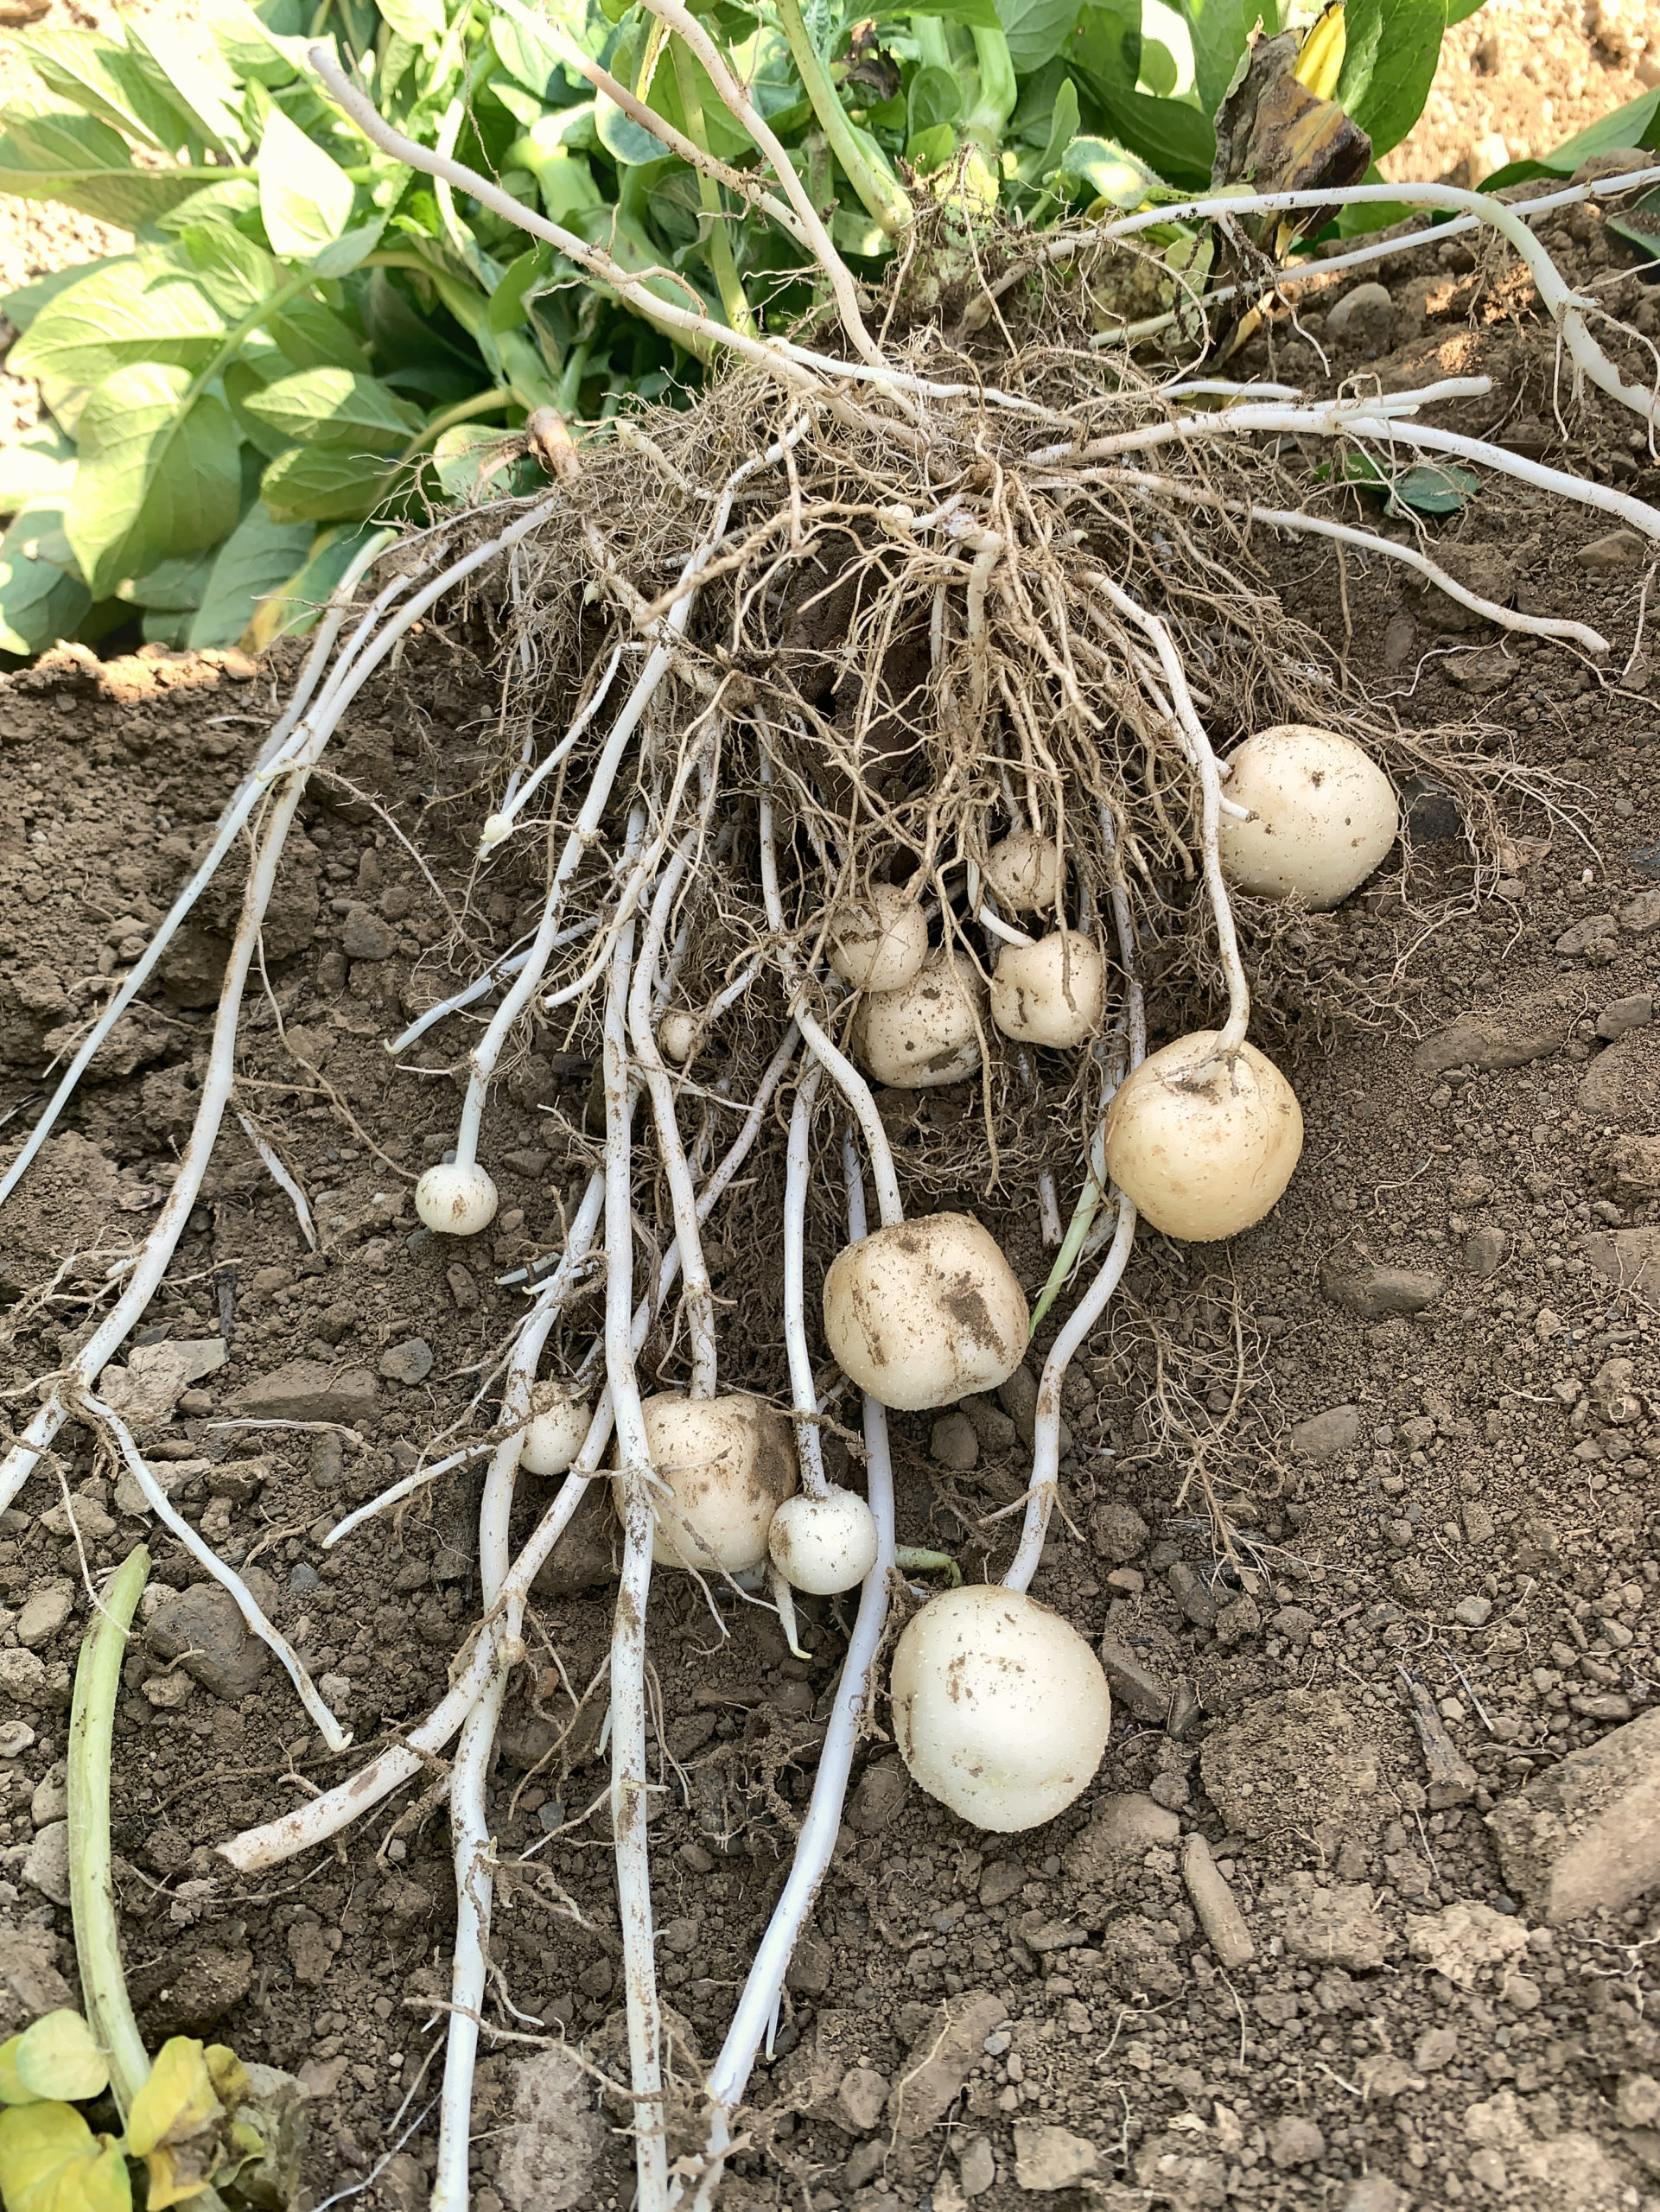 Impact of Chloropicrin Soil Fumigation on Potato Farming in Uncertain Times